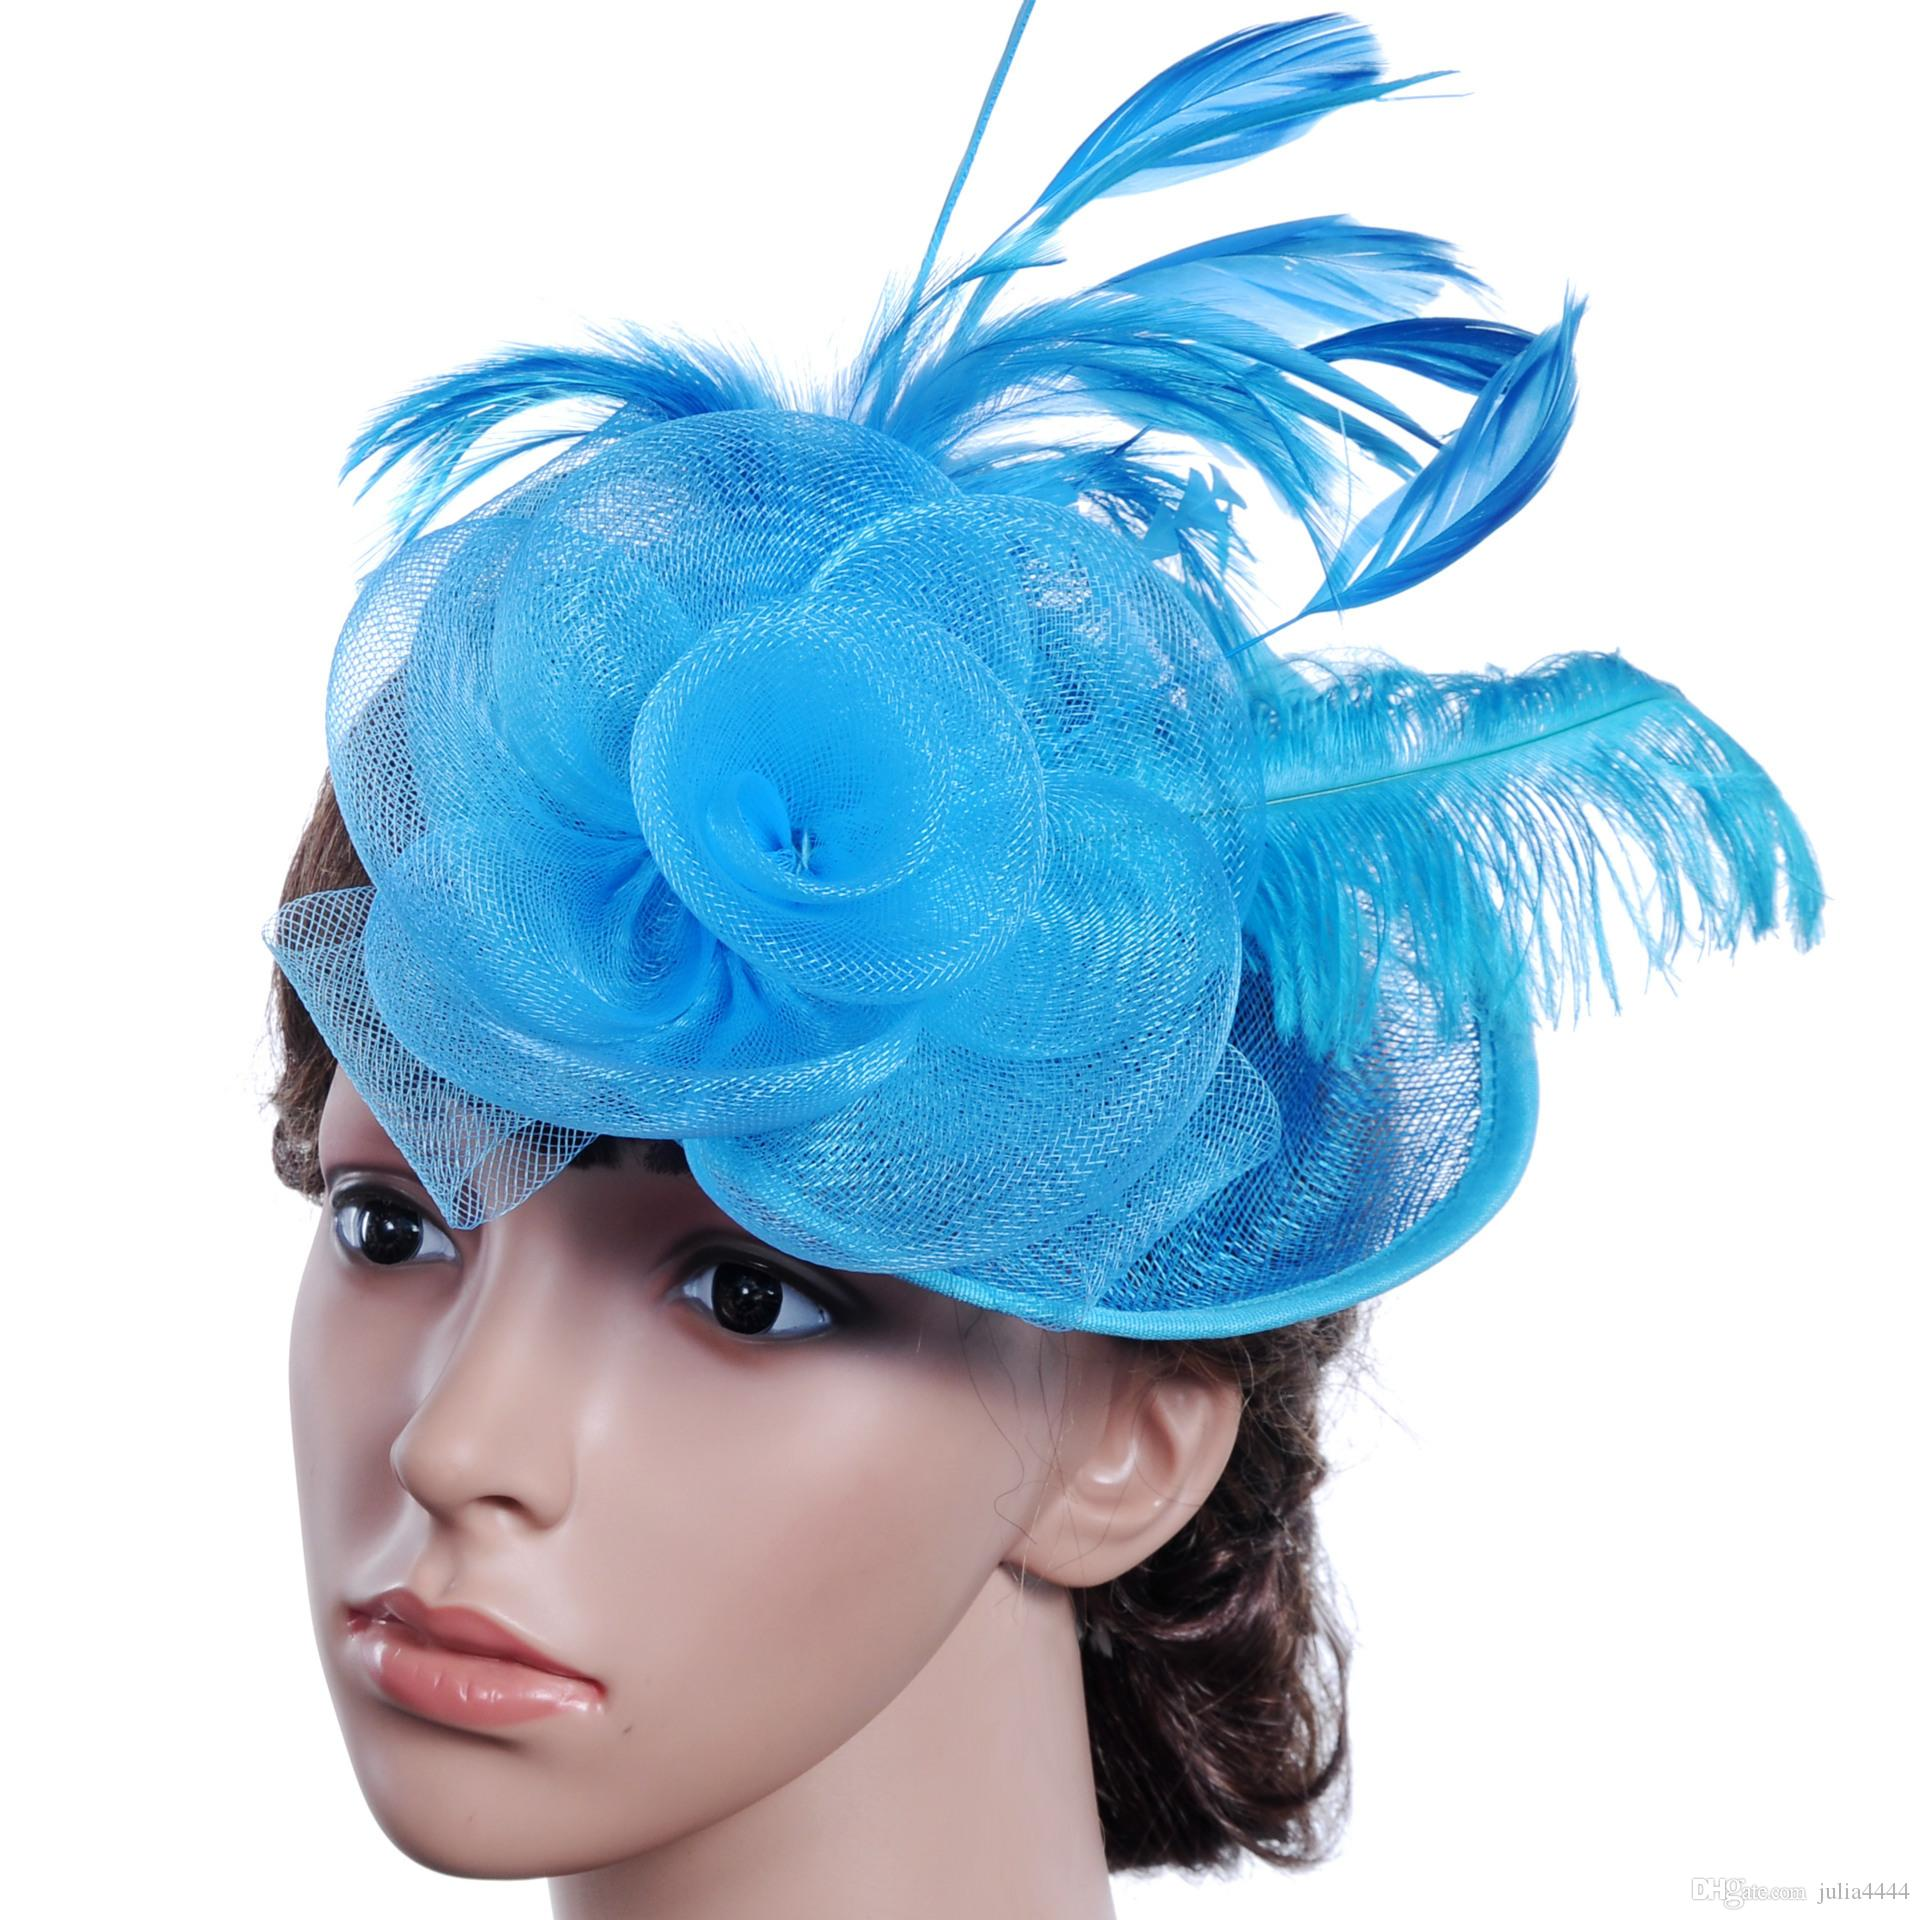 149d64ac European And American Party Formal Women Hats For Wedding Party Evening  Special Occasion Formal Ladies Bridal Hats Accessories Unique Hats Unusual  Hats From ...